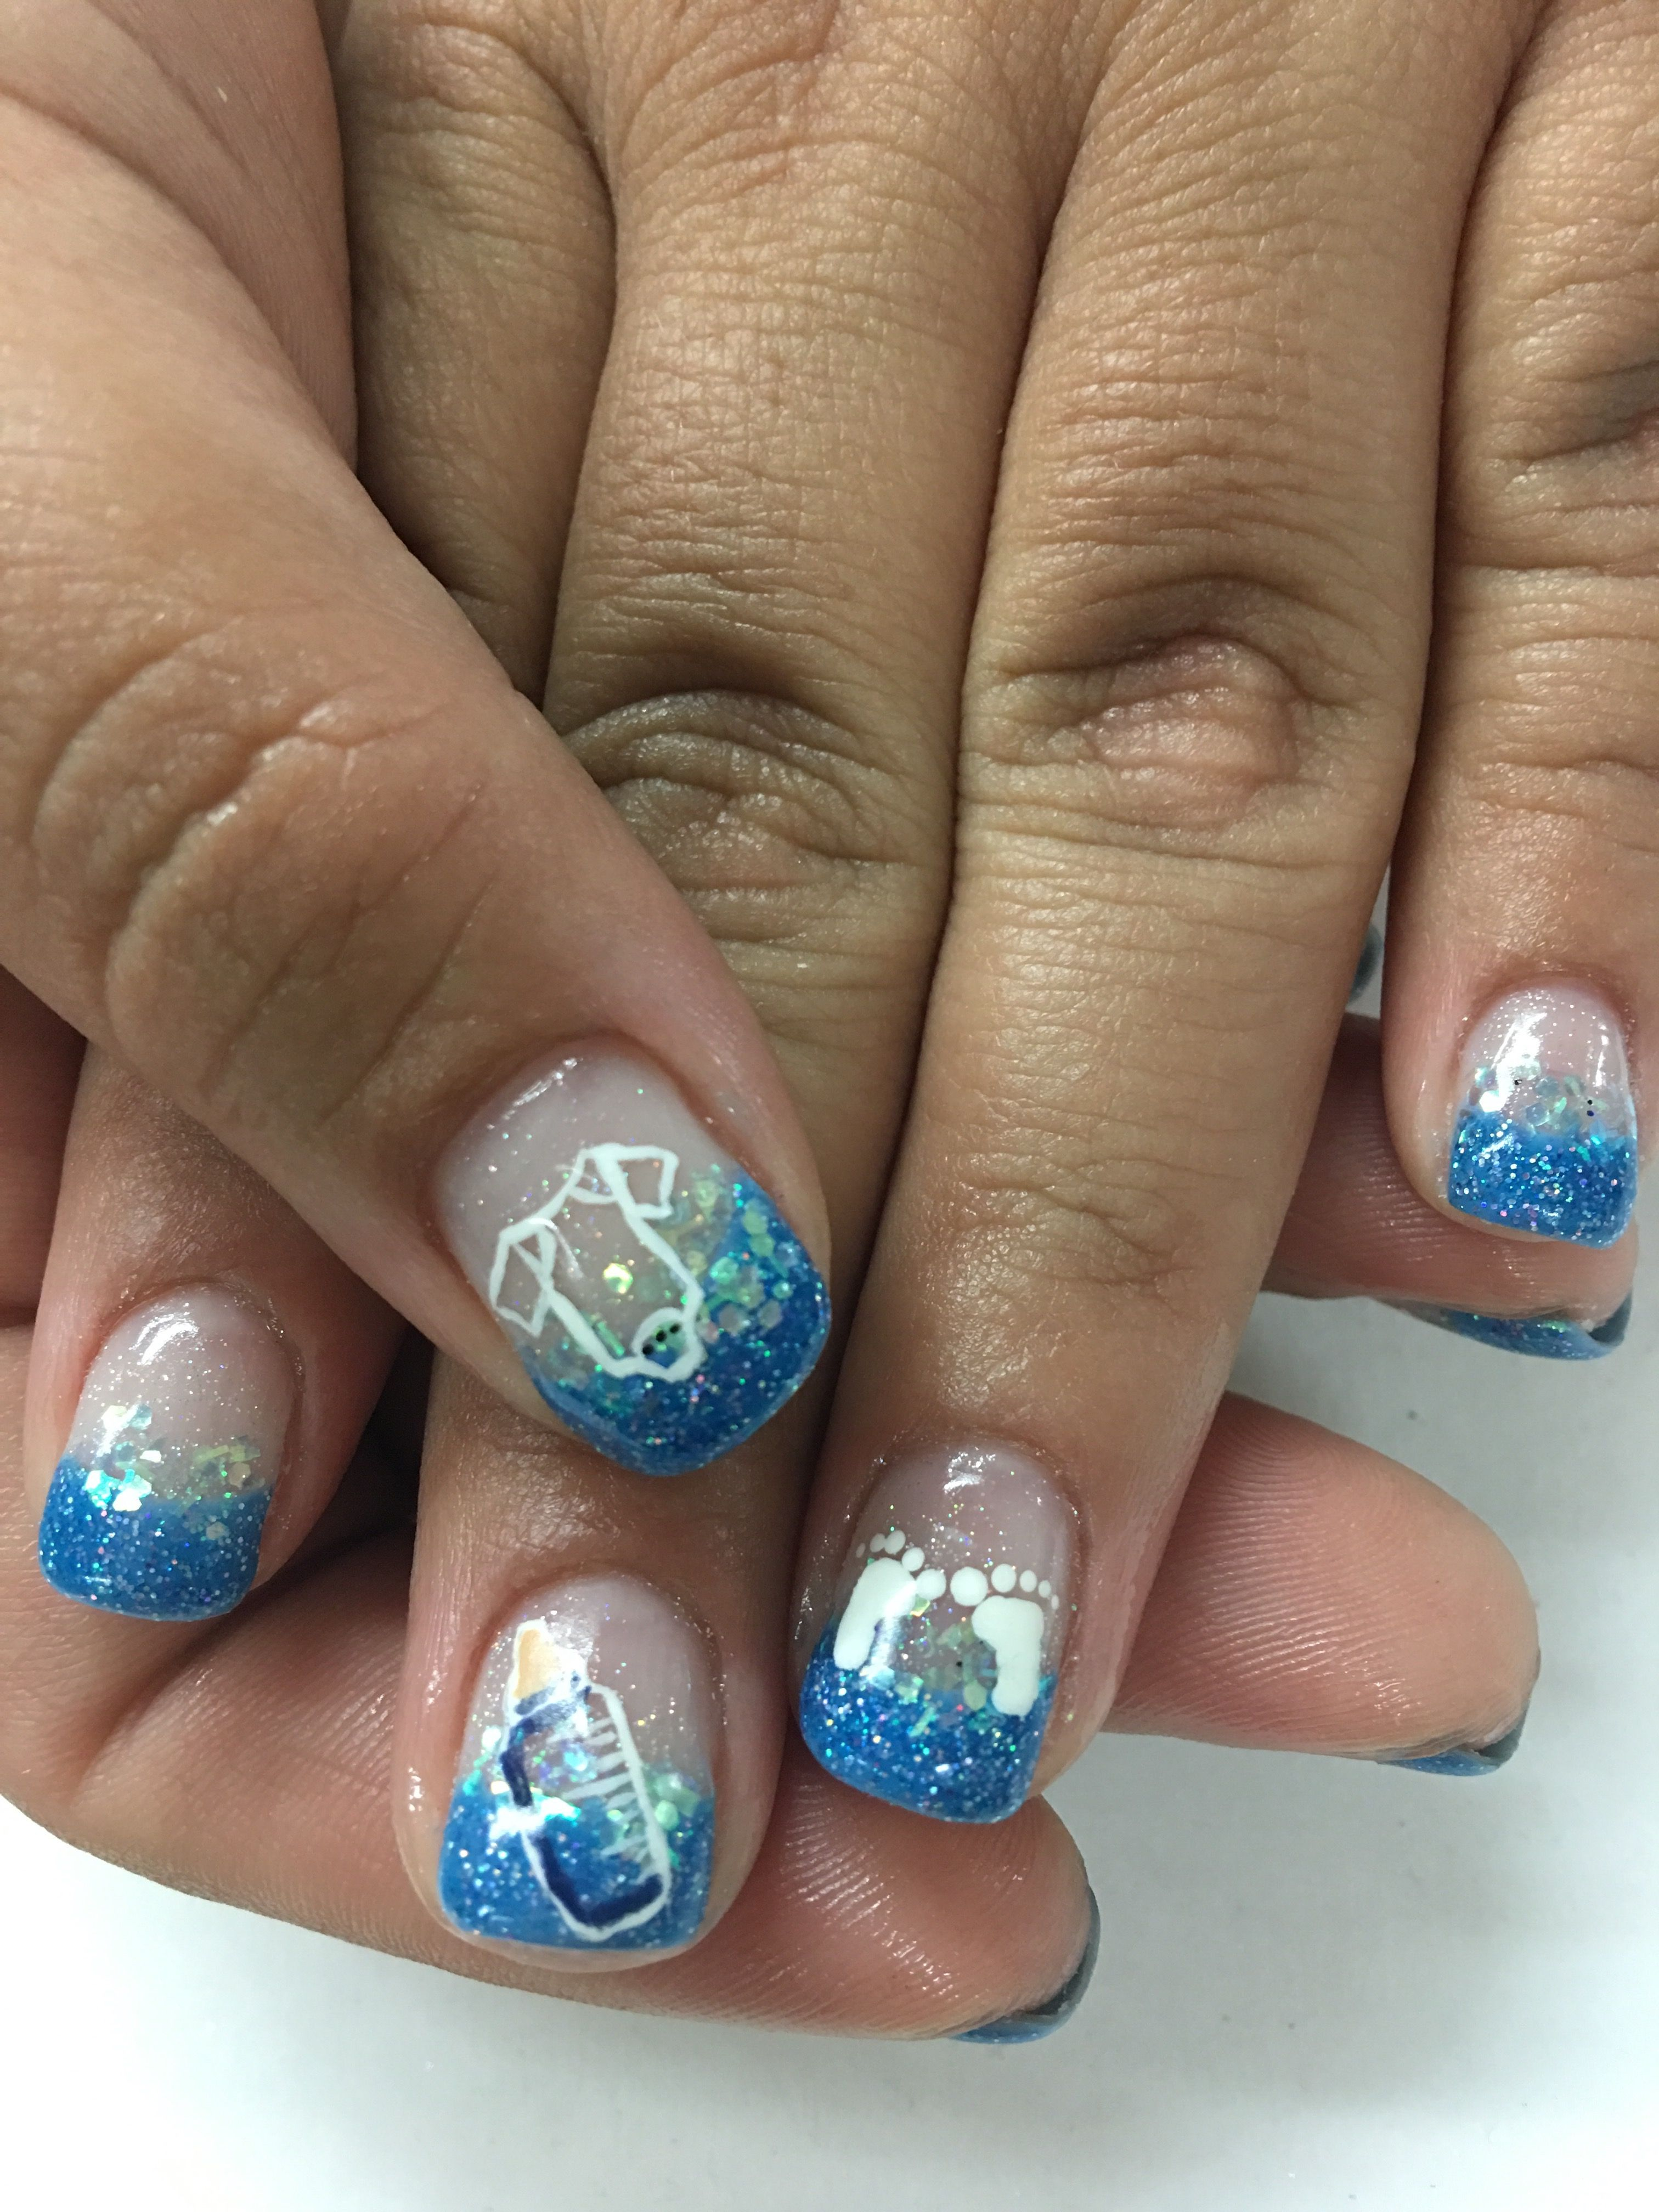 Baby Boy Shower French Glitter Hand Painted Gel Nails   Gel Nail ...